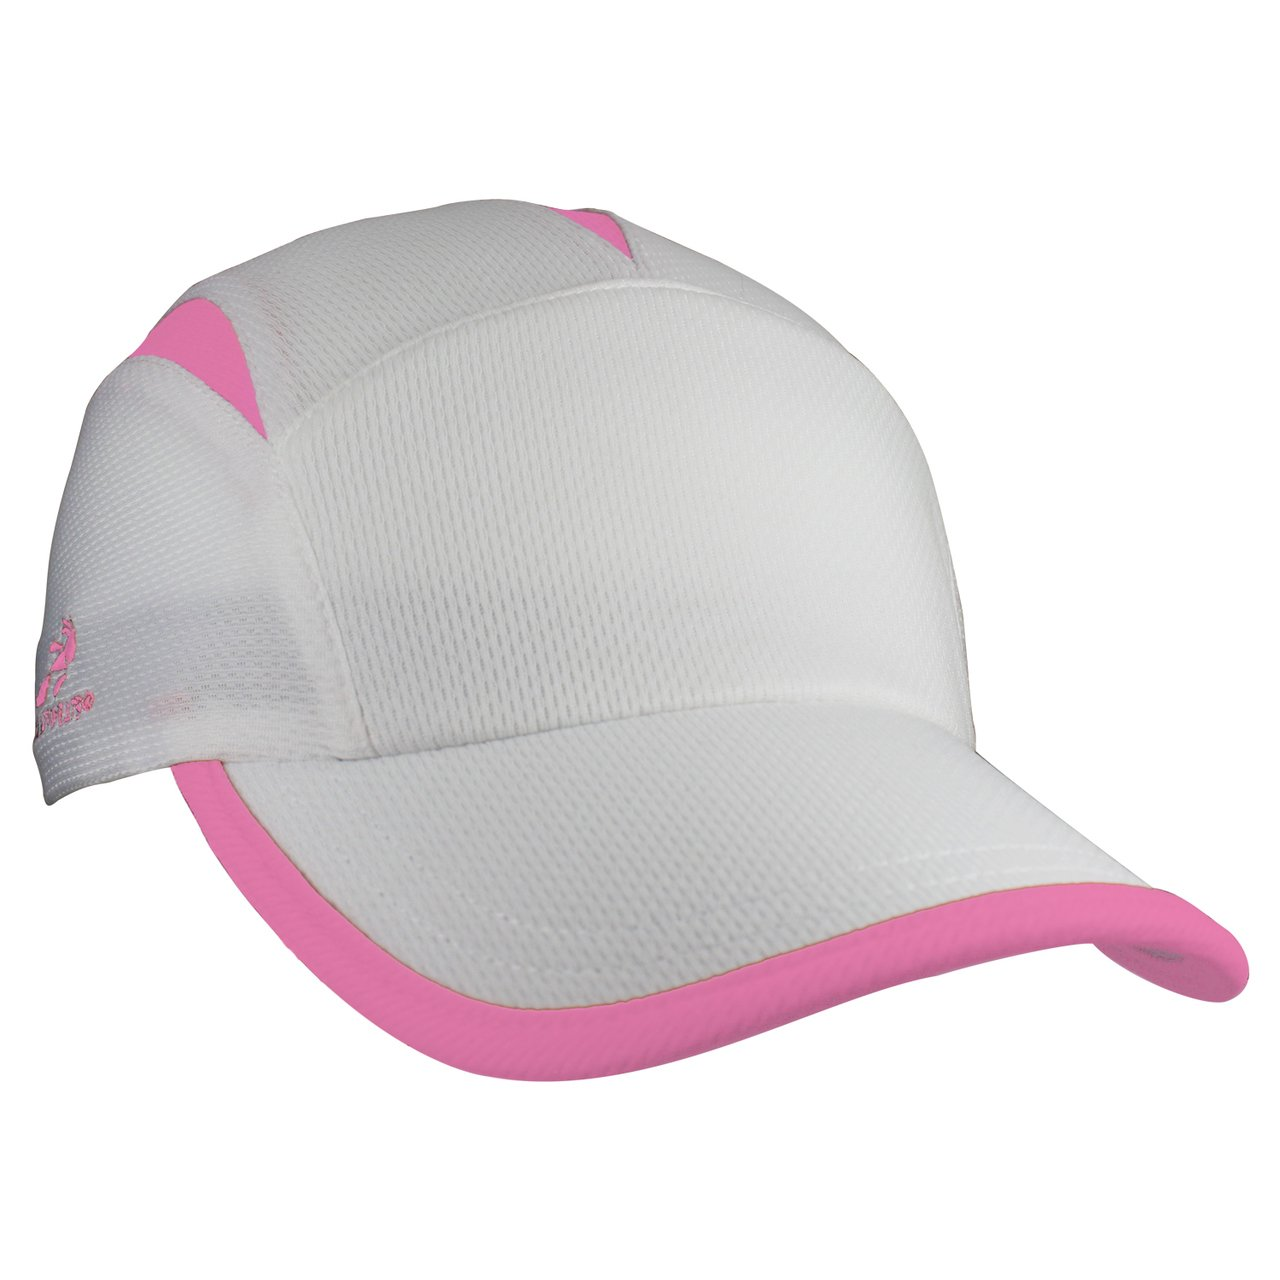 Headsweats Go Hat, White/Hot Pink (One Size)